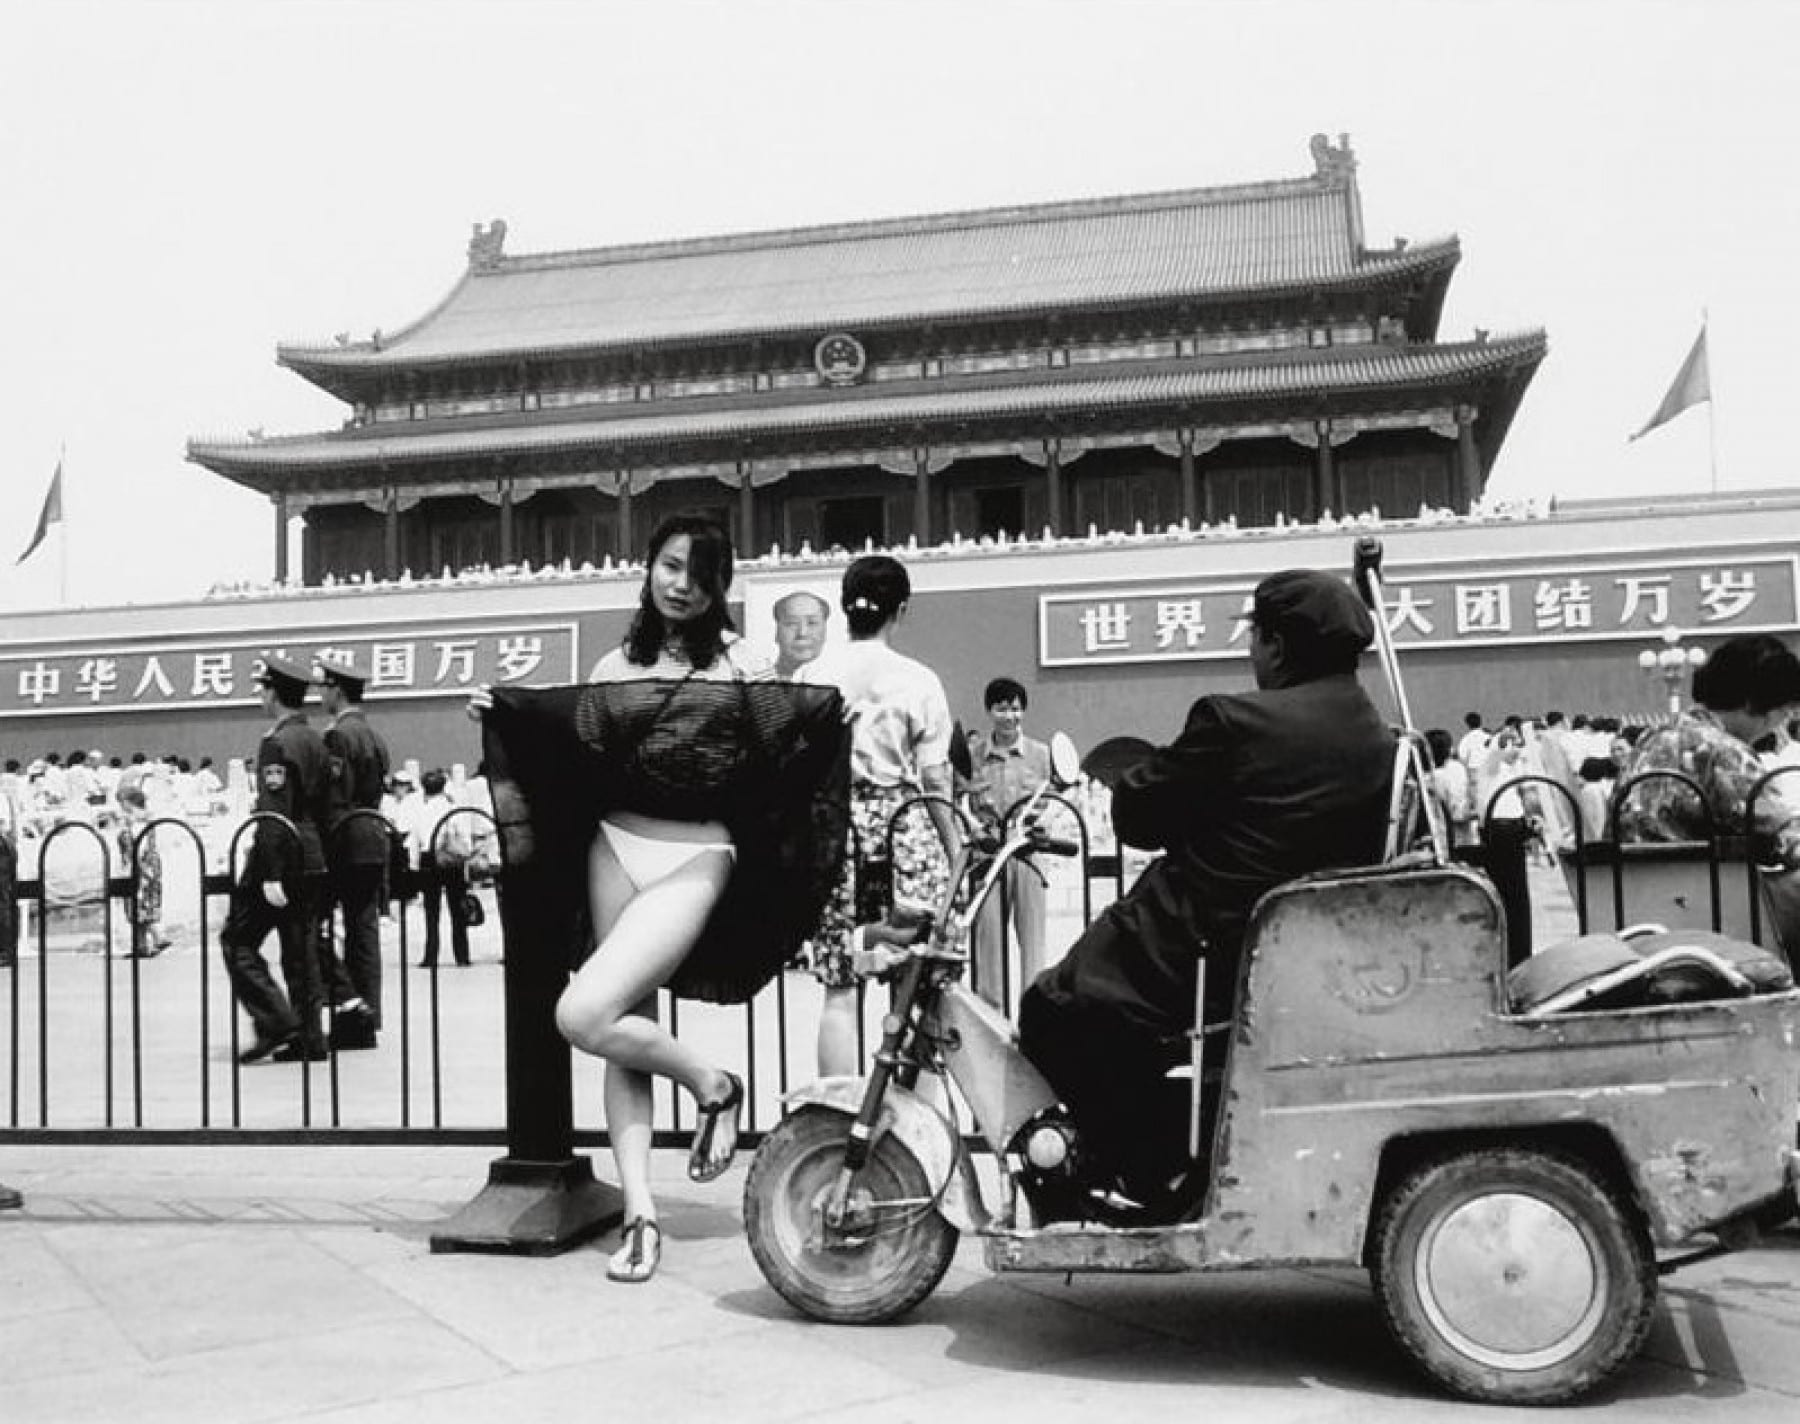 Lu Qing at Tiananmen Square, Beijing, 1994 Black and White China photography